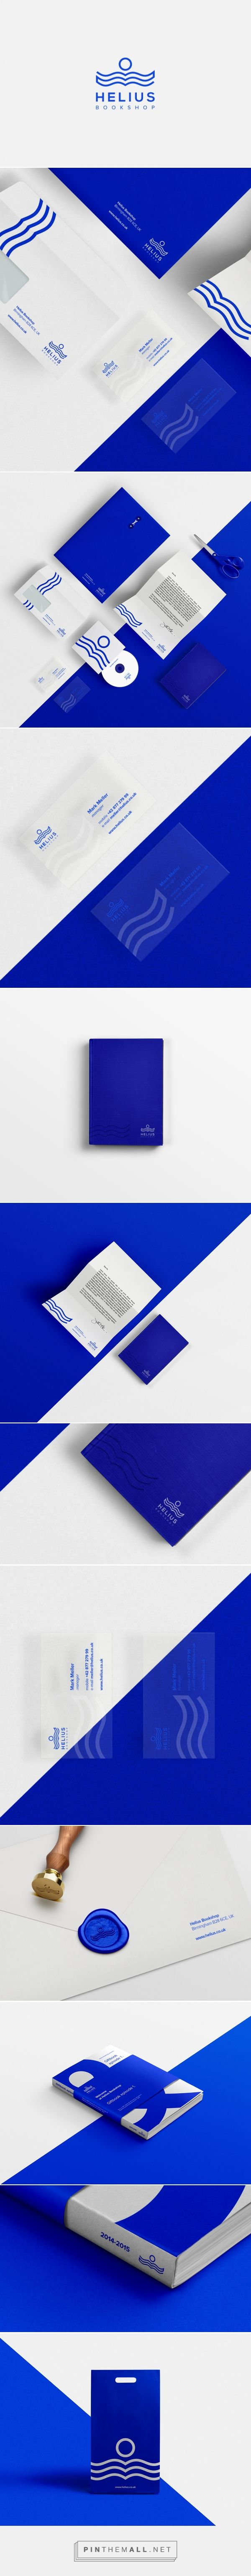 Helius bookshop Branding on Behance | Fivestar Branding – Design and Branding Agency & Inspiration Gallery